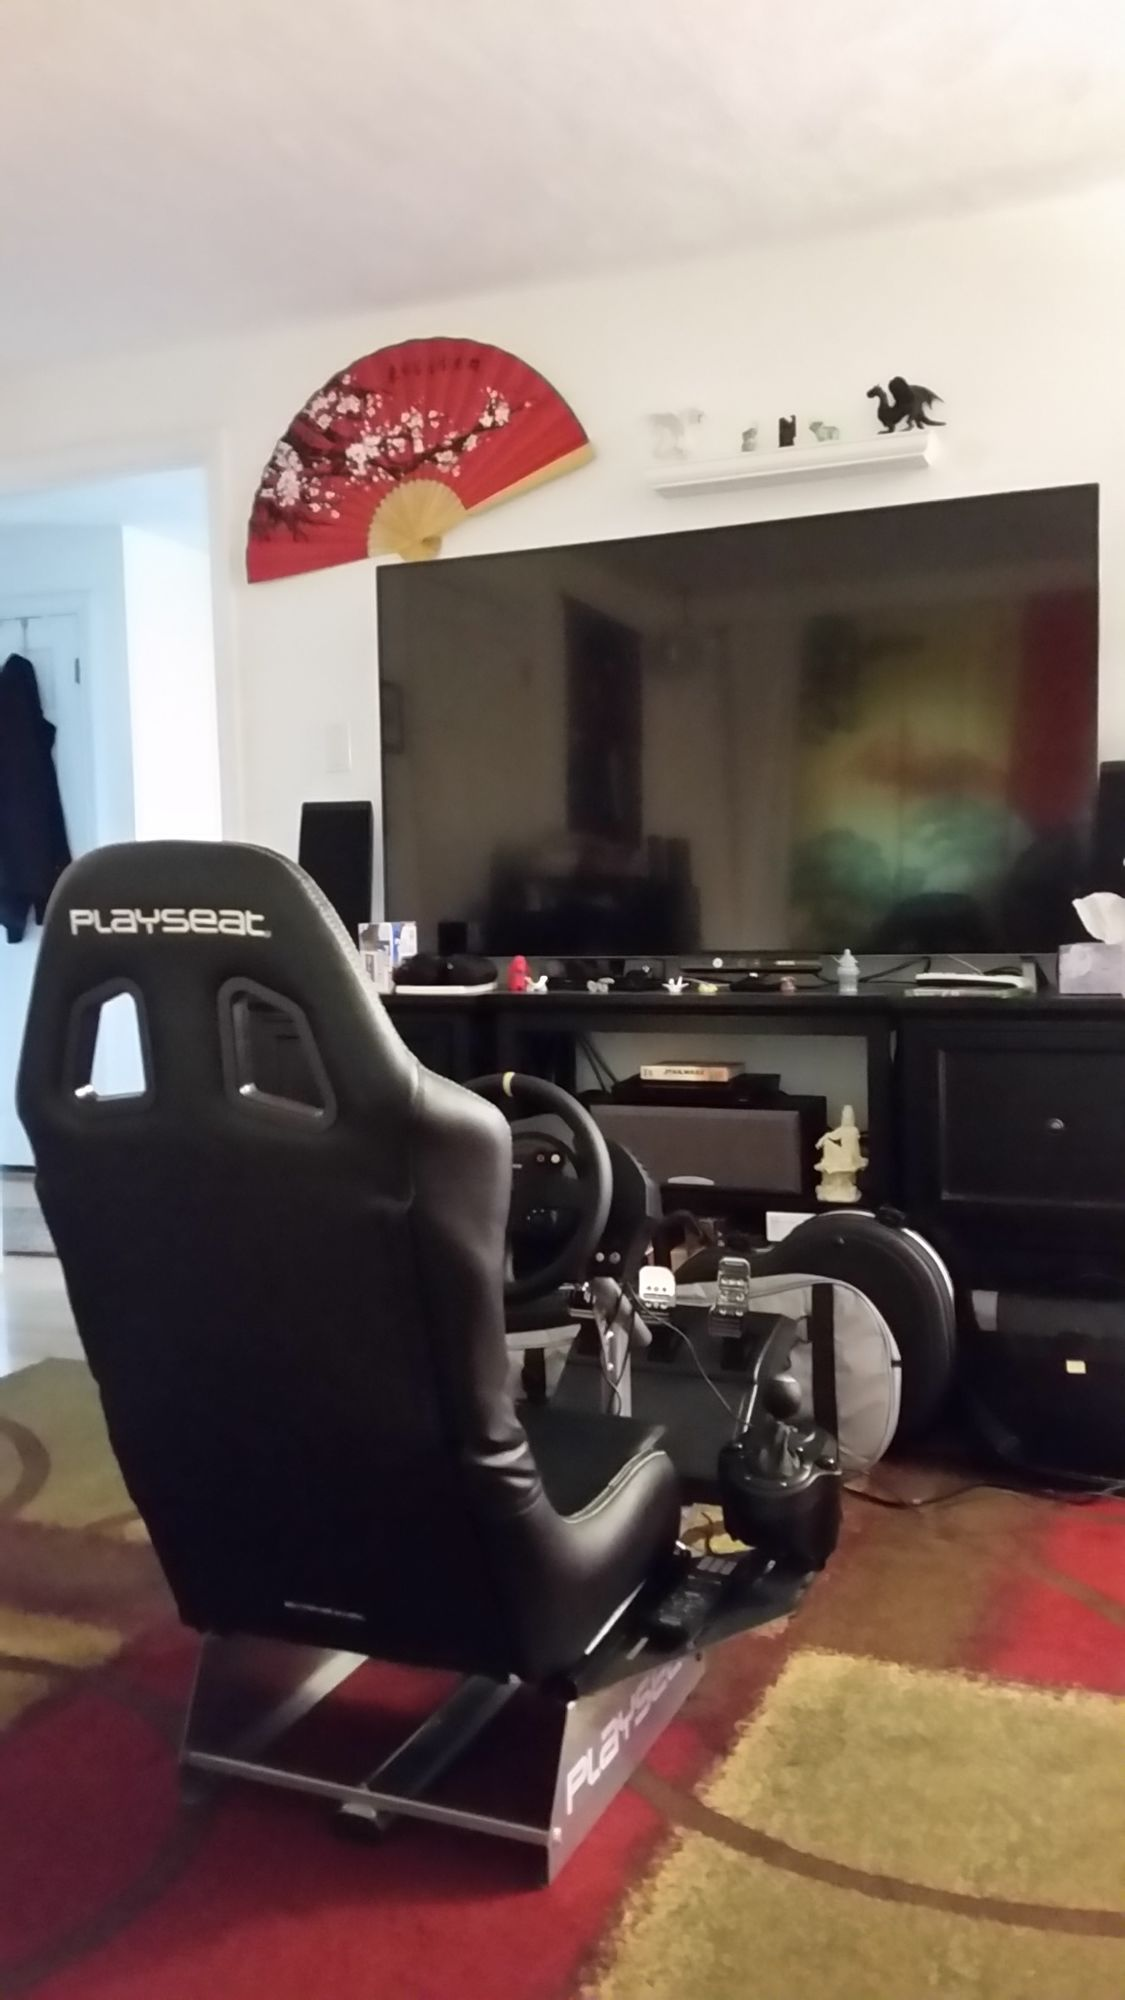 Most awesome gamig chair set up